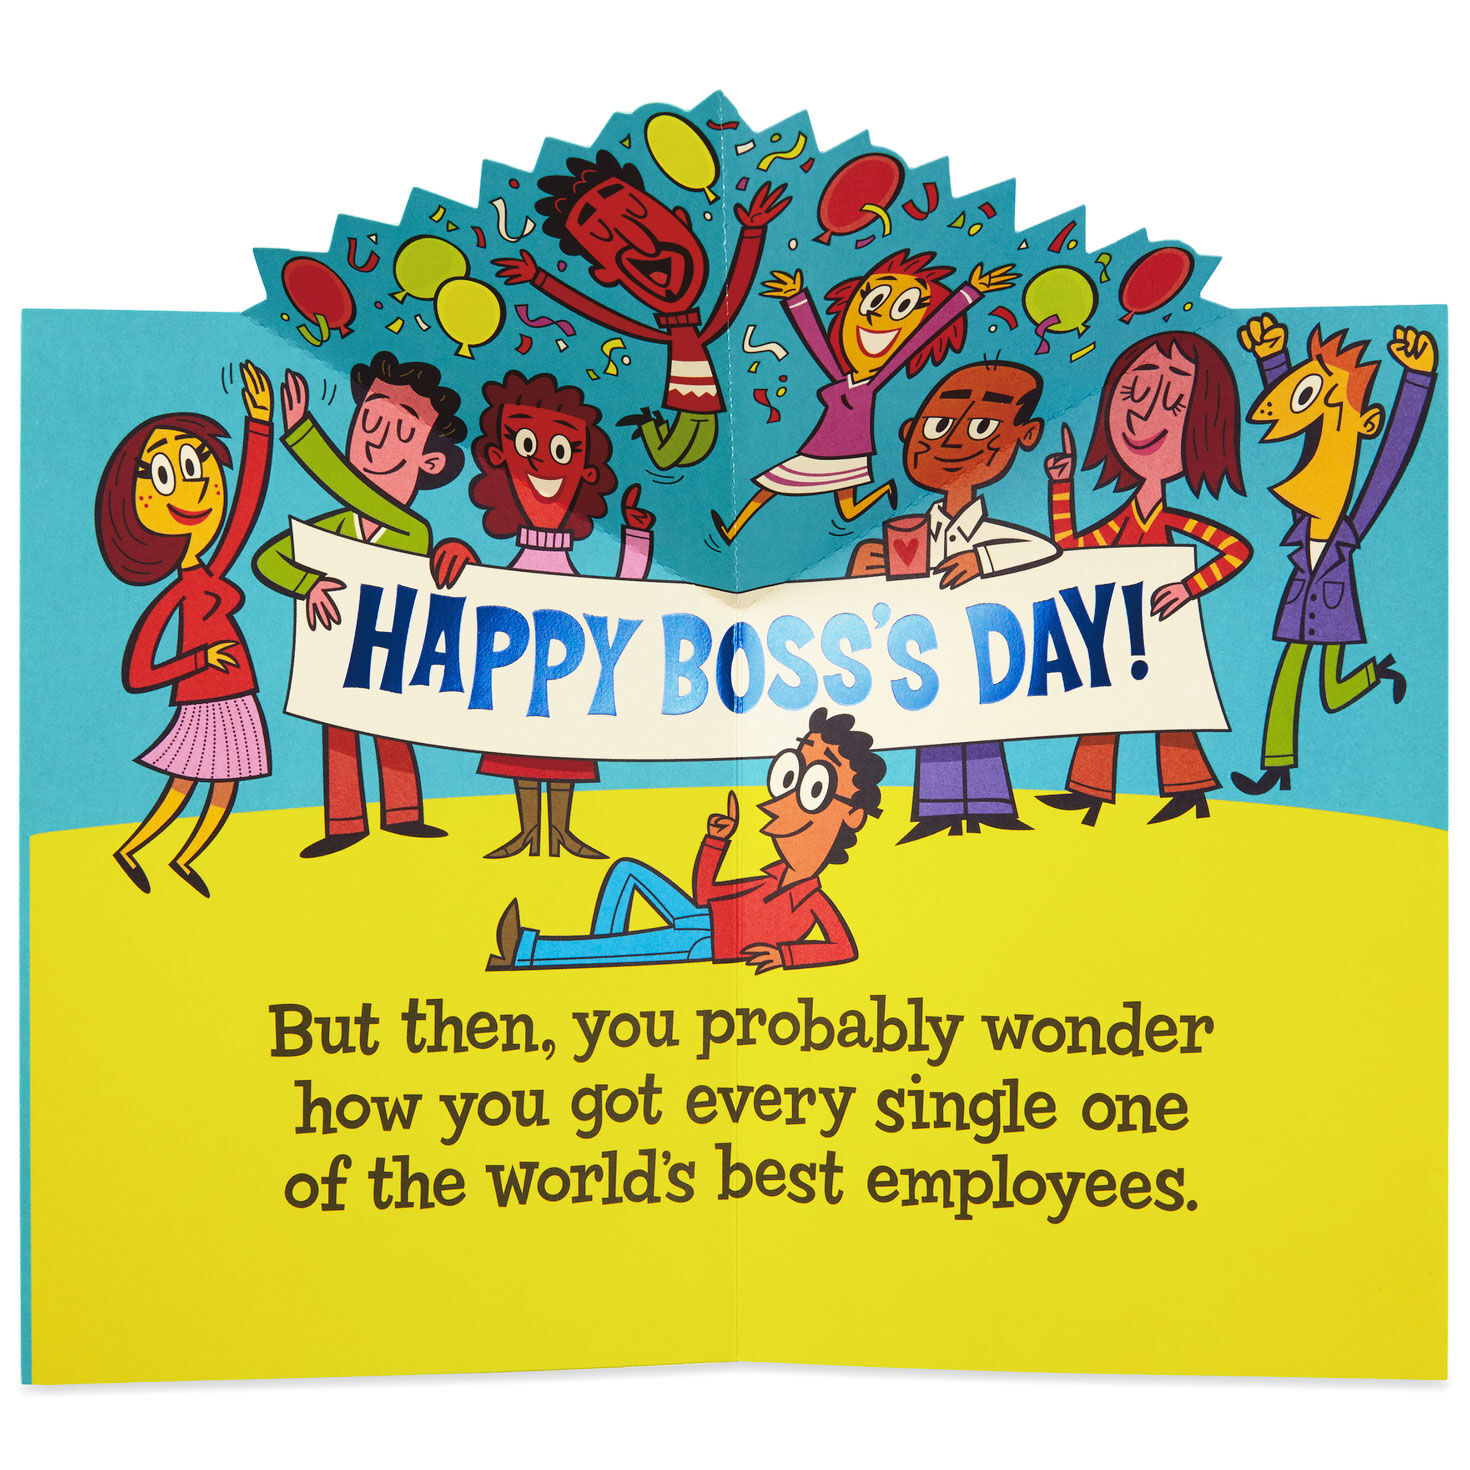 photograph relating to Happy Boss's Day Cards Printable named Nationwide Manager Working day Playing cards Hallmark